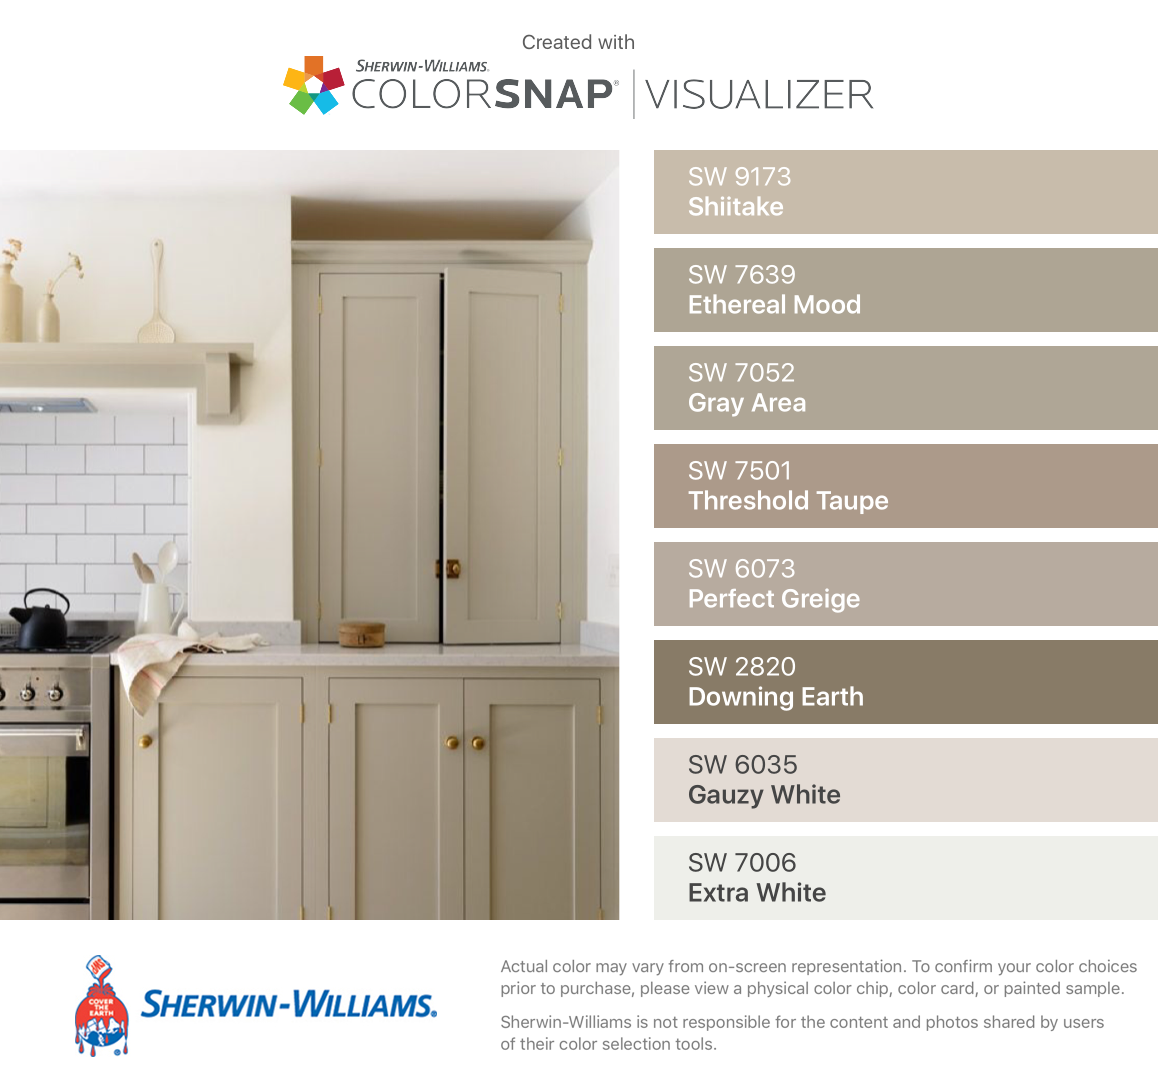 I Found These Colors With Colorsnap Visualizer For Iphone By Sherwin Williams Shiitake Sw Basement Laundry Room Makeover Taupe Walls Taupe Kitchen Cabinets